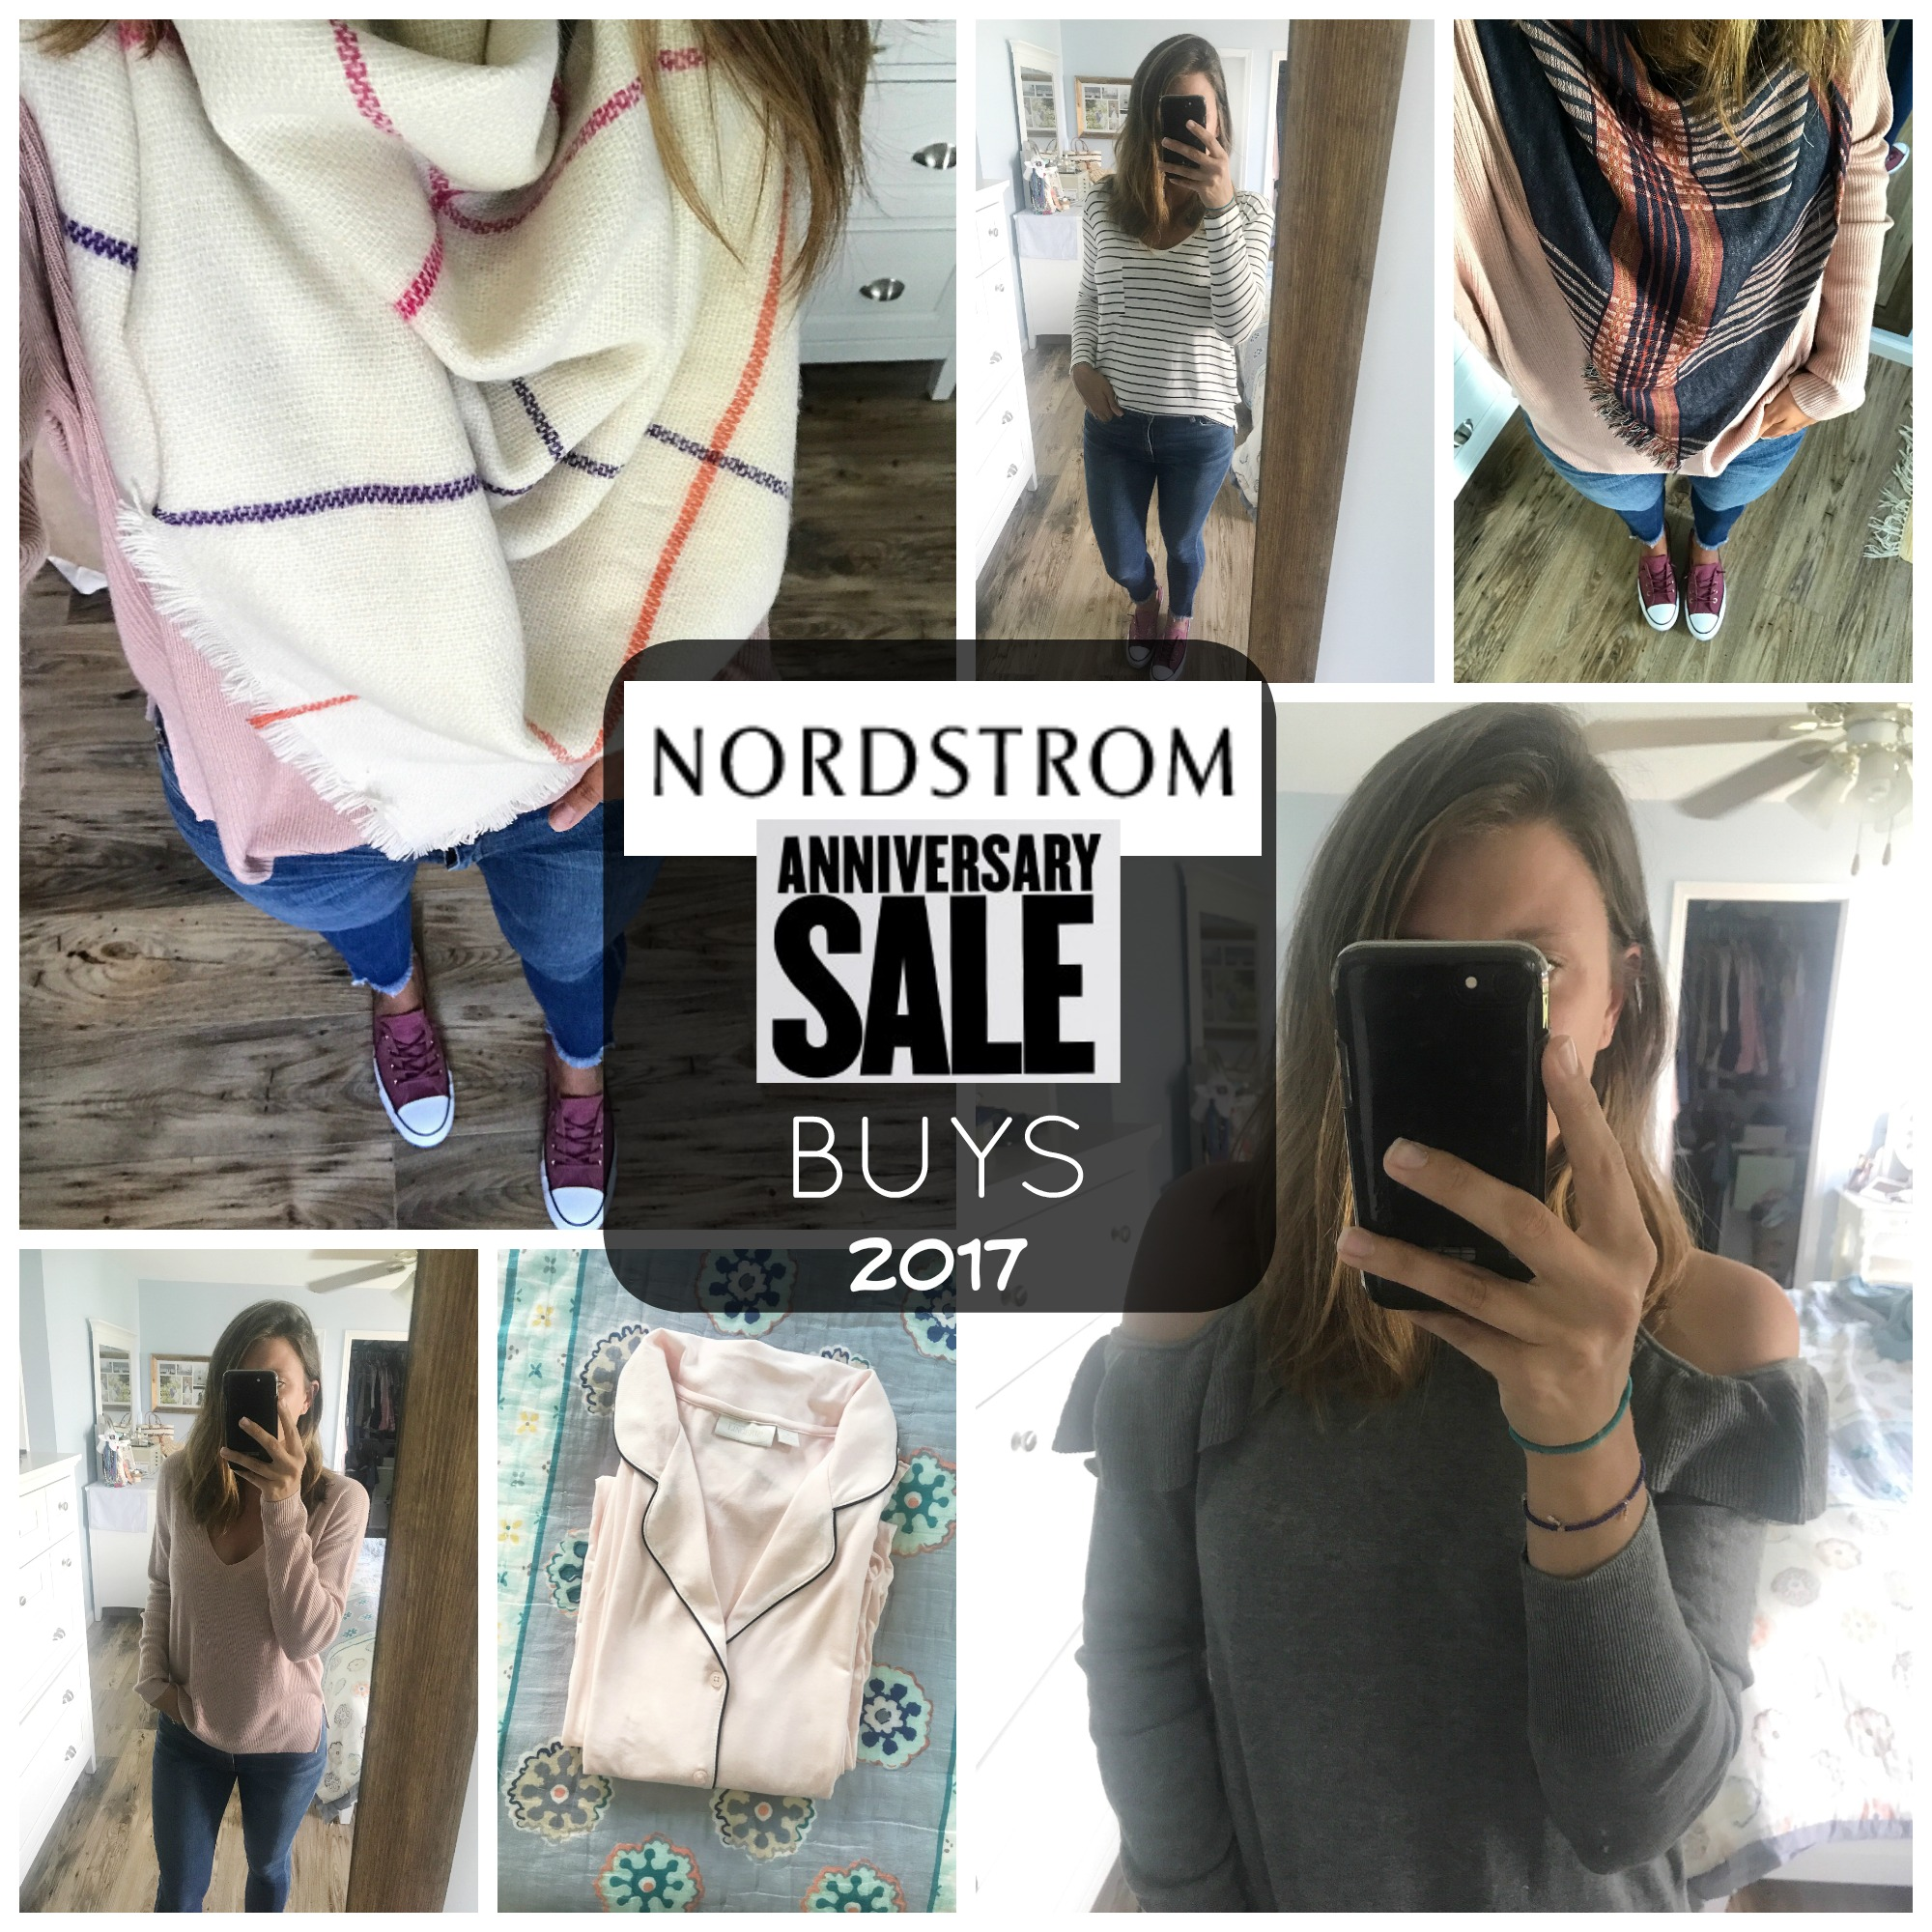 Nordstrom Anniversary Sale Buys 2017